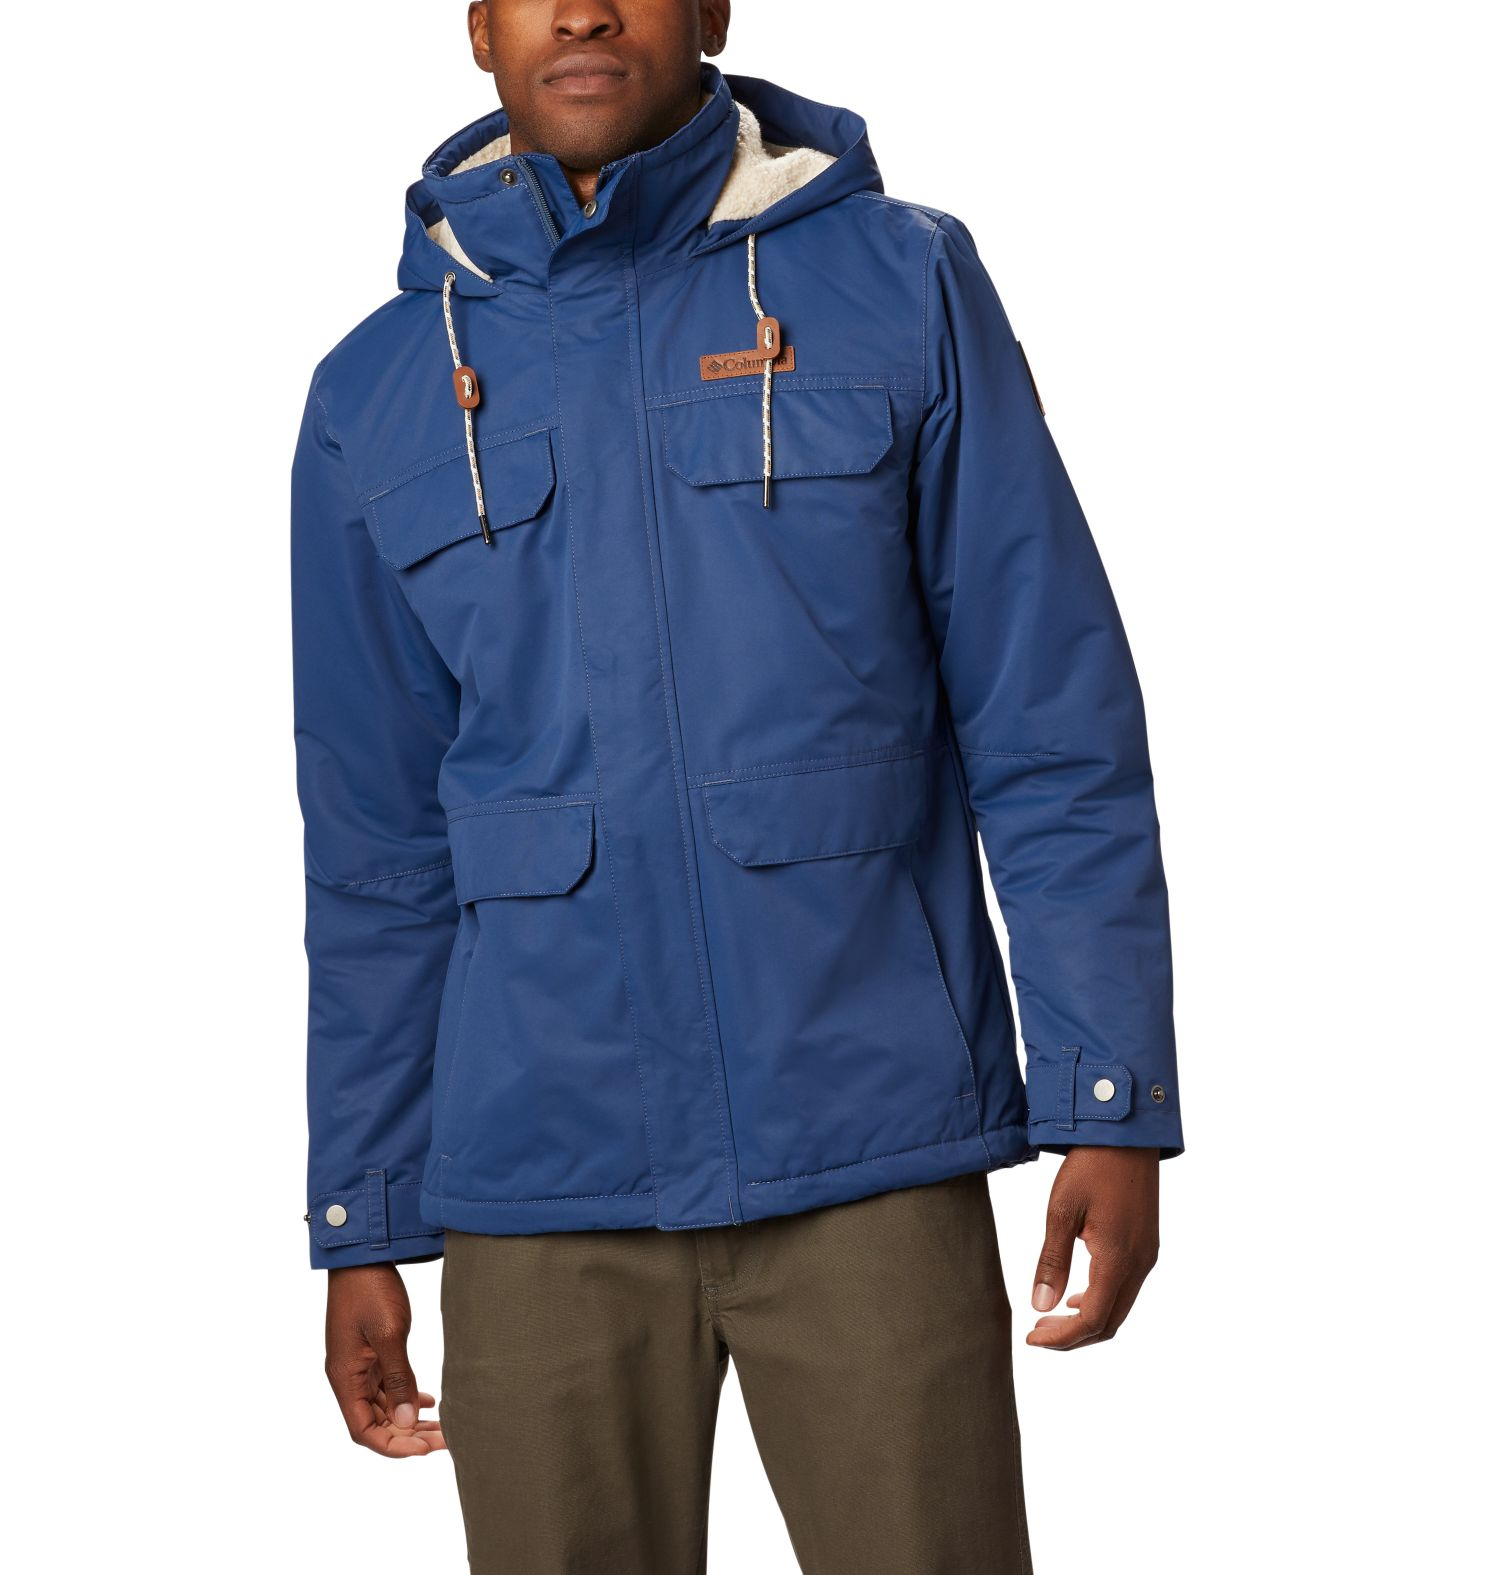 CHAQUETA SOUTH CANYON 80G MICROTEMP XF II 100% POLYESTER Omni-TECH WATERPROOF BREATHABLE DARK MOUNTAIN